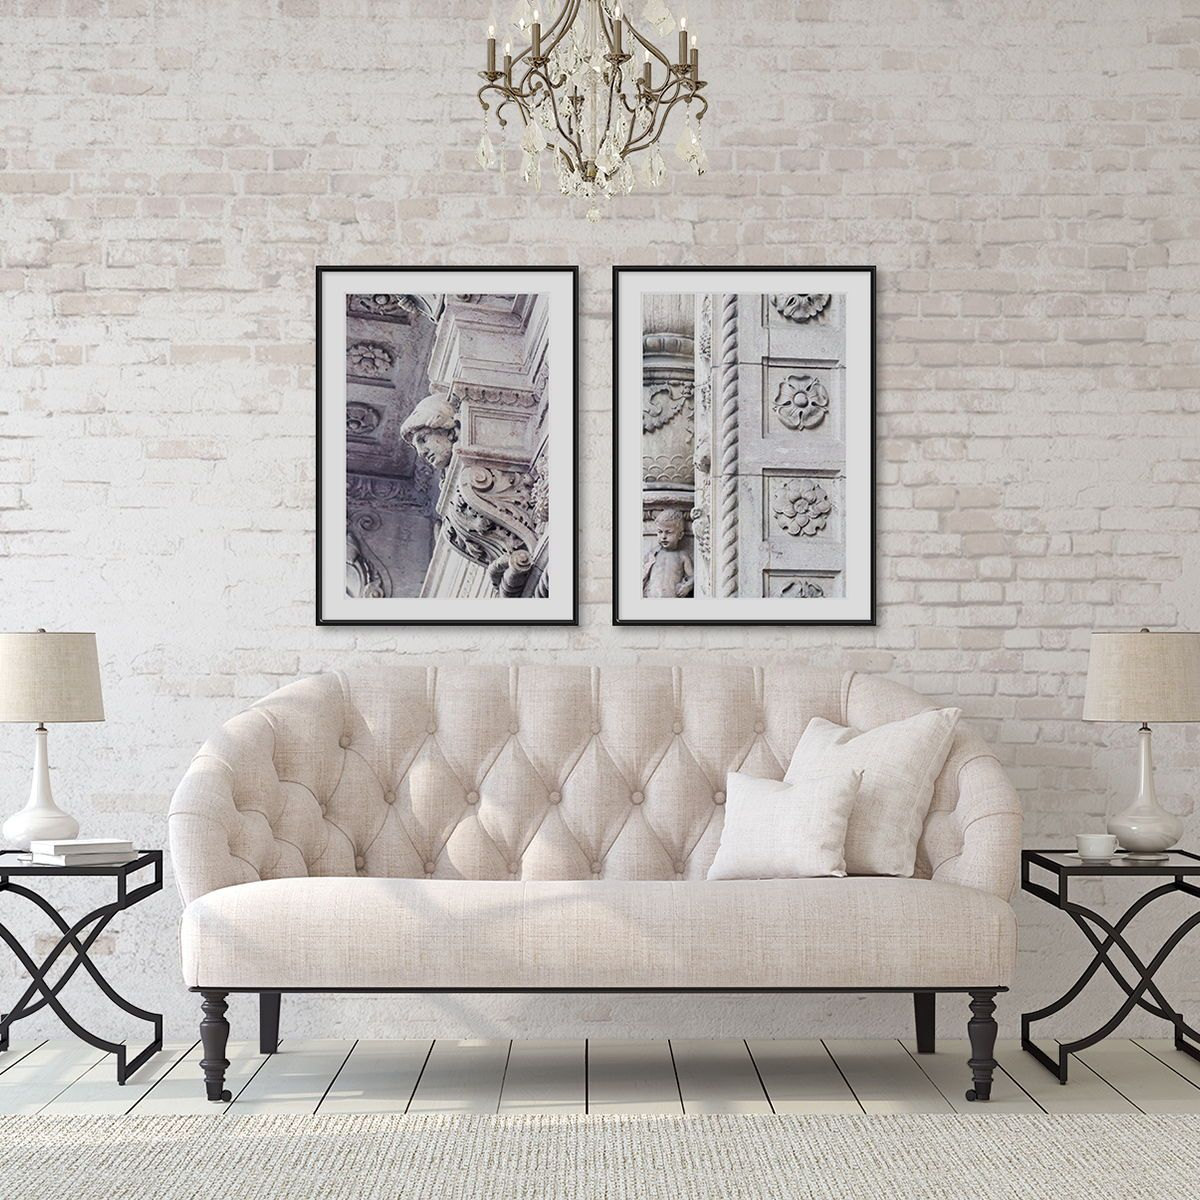 Architectural Details Fine Art Prints The Grey And Purple Photographs Come Unframed Or Framed In Wall Art Decor Living Room Rustic Wall Decor Living Room Art #rustic #wall #art #for #living #room